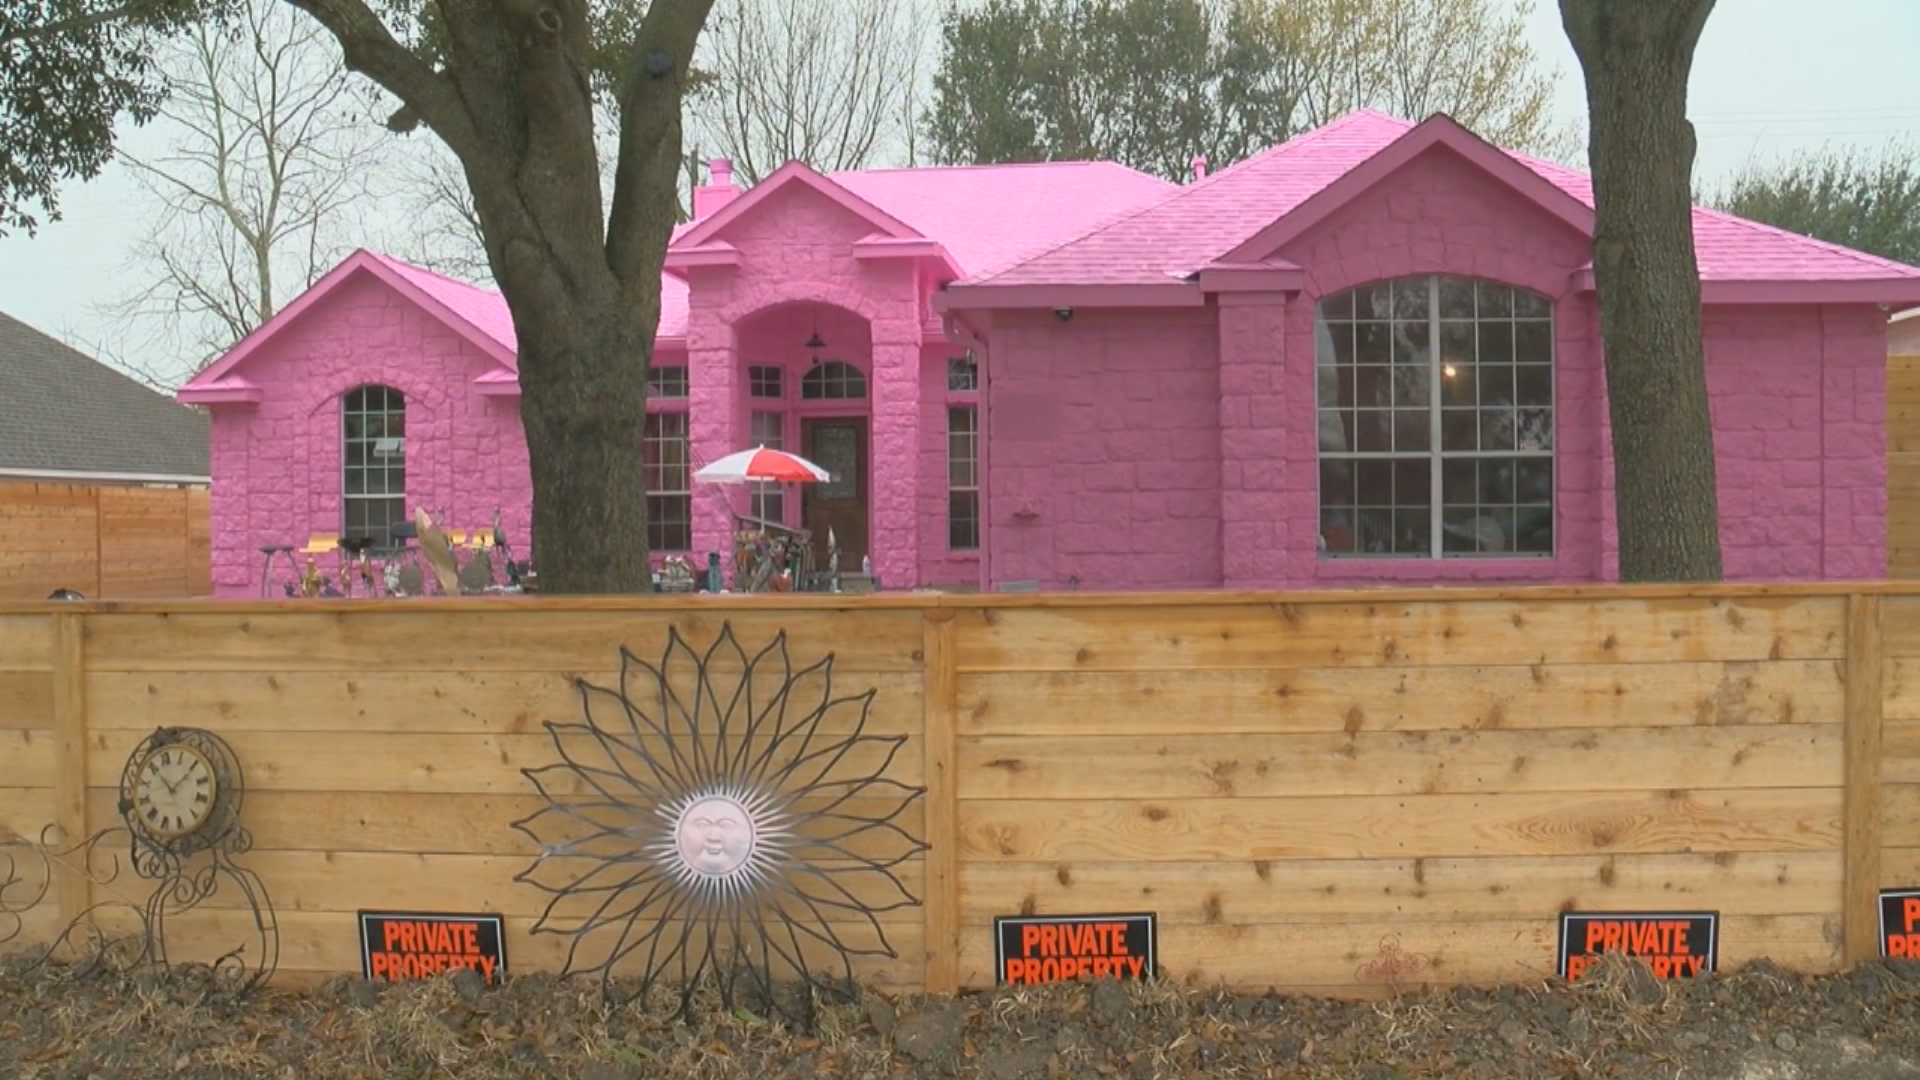 In a Pflugerville{ } subdivision spring flowers aren't the only thing that is pink. (CBS Austin)